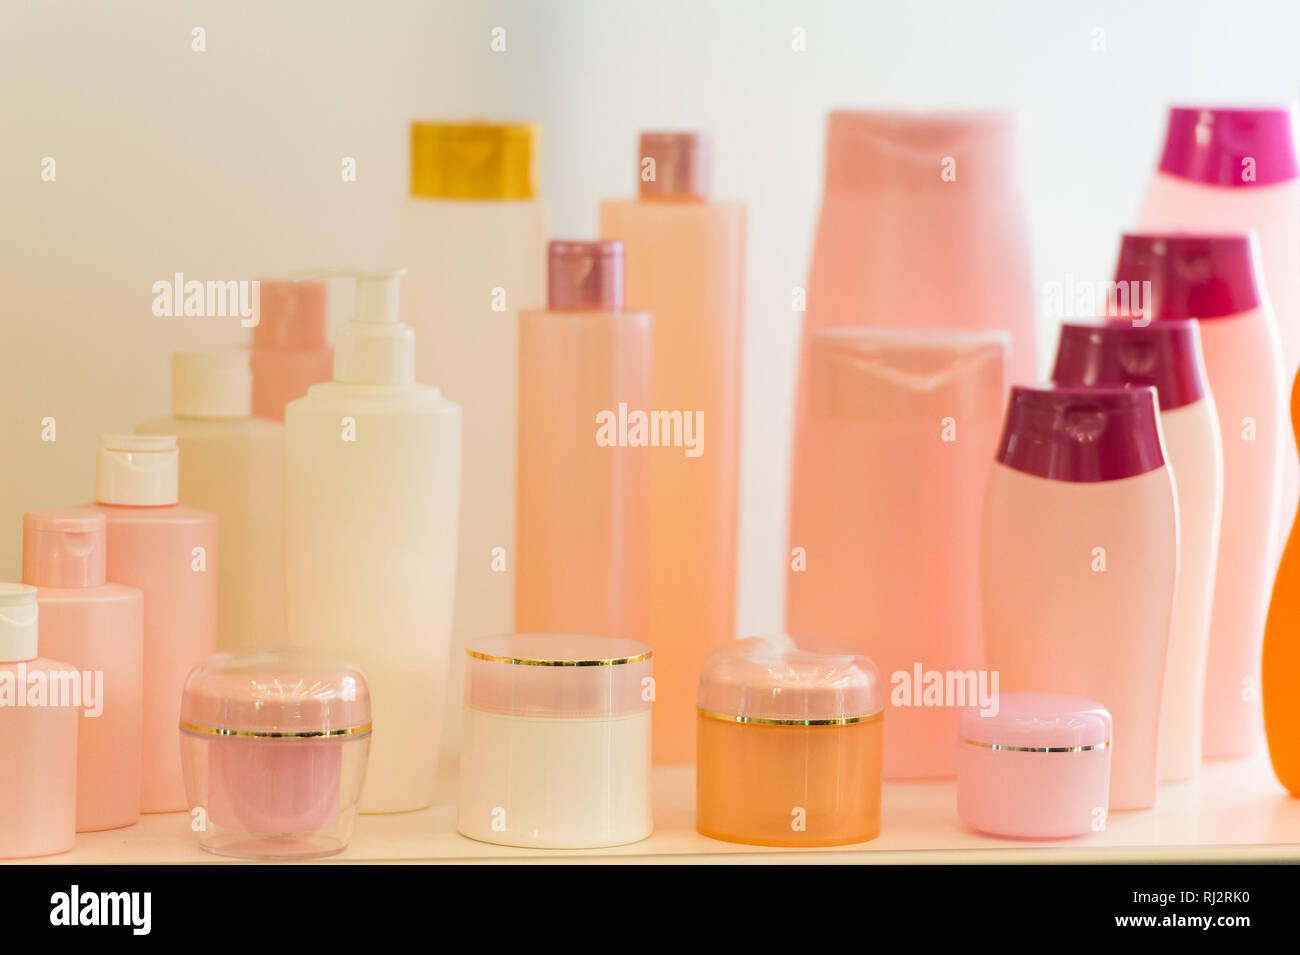 Composition with containers of body care and beauty products. Eco cosmetics. pink colors Stock Photo